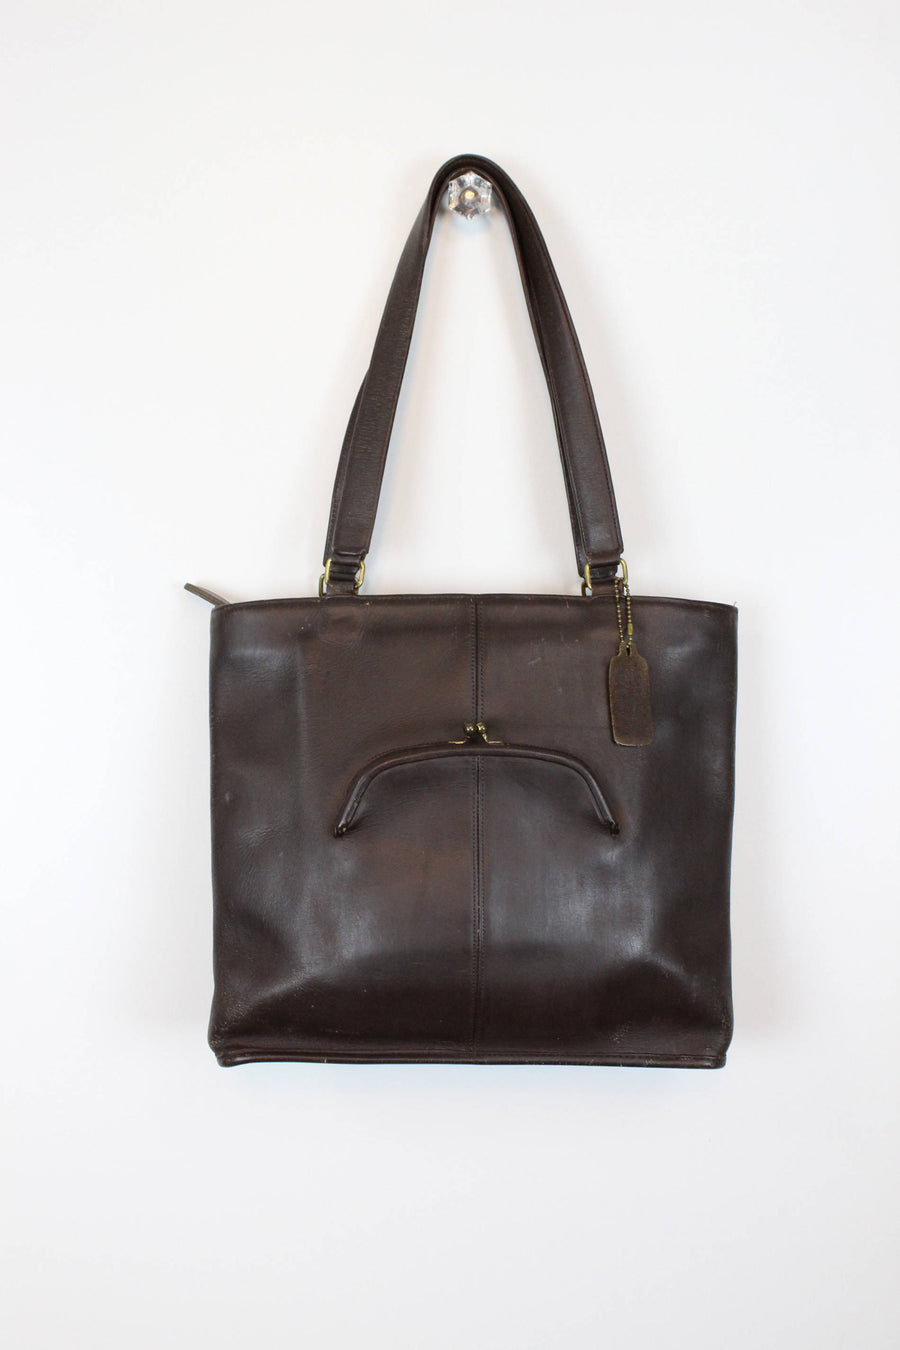 1970s Bonnie Cashin era Coach shoulderbag | vintage leather large purse tote